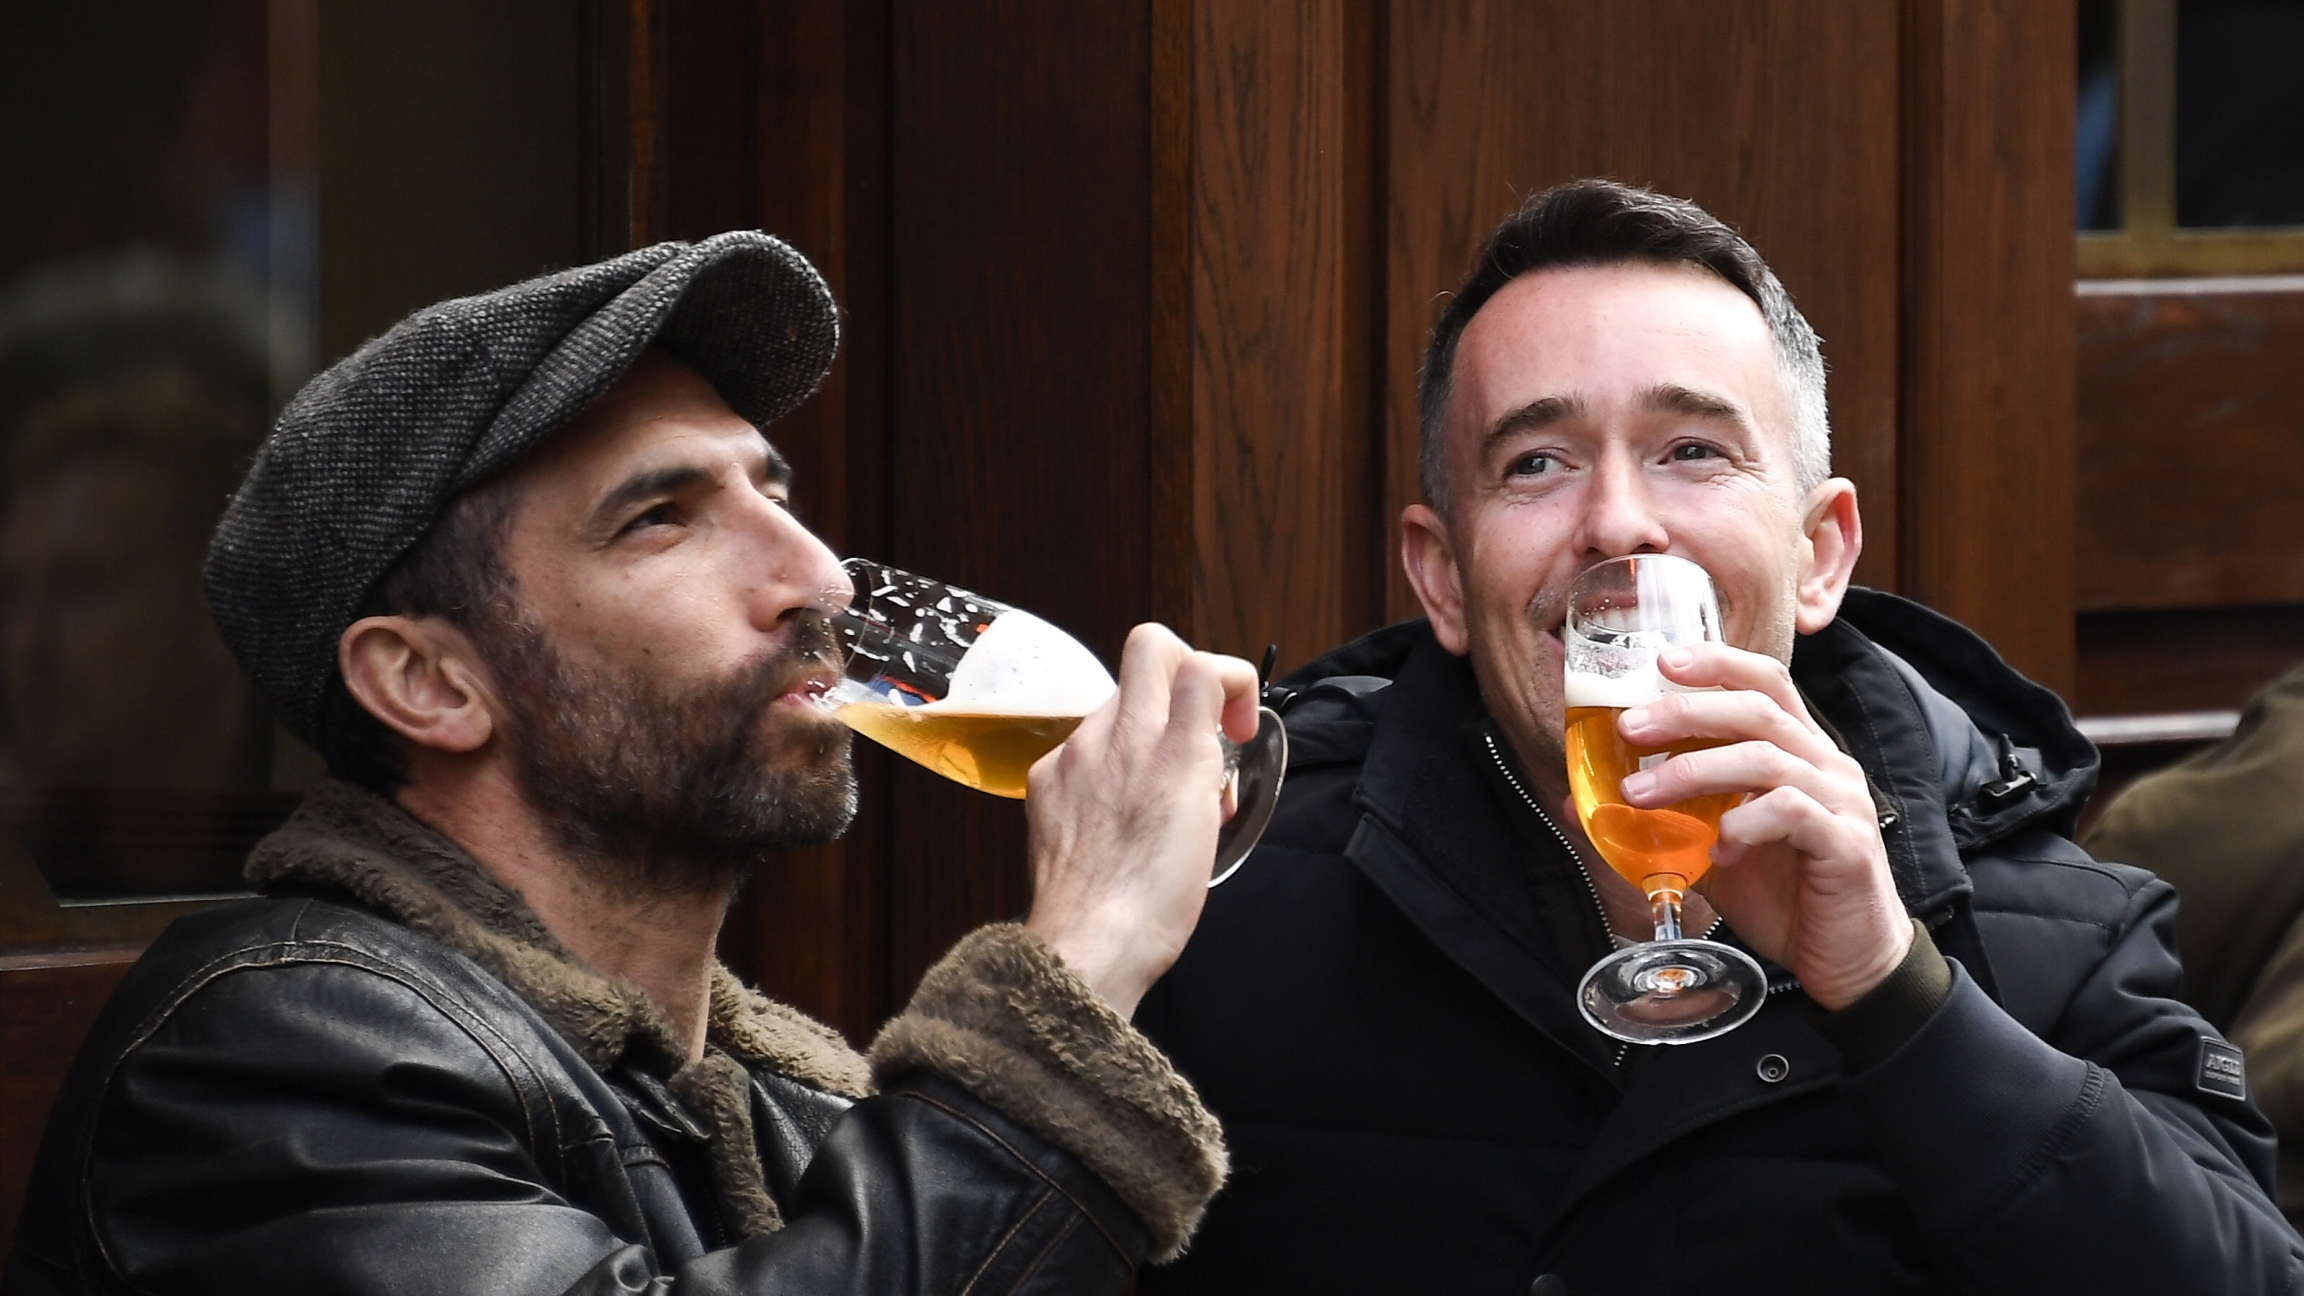 Two white men wearing dark jackets drink beer outdoors at a pub in London.